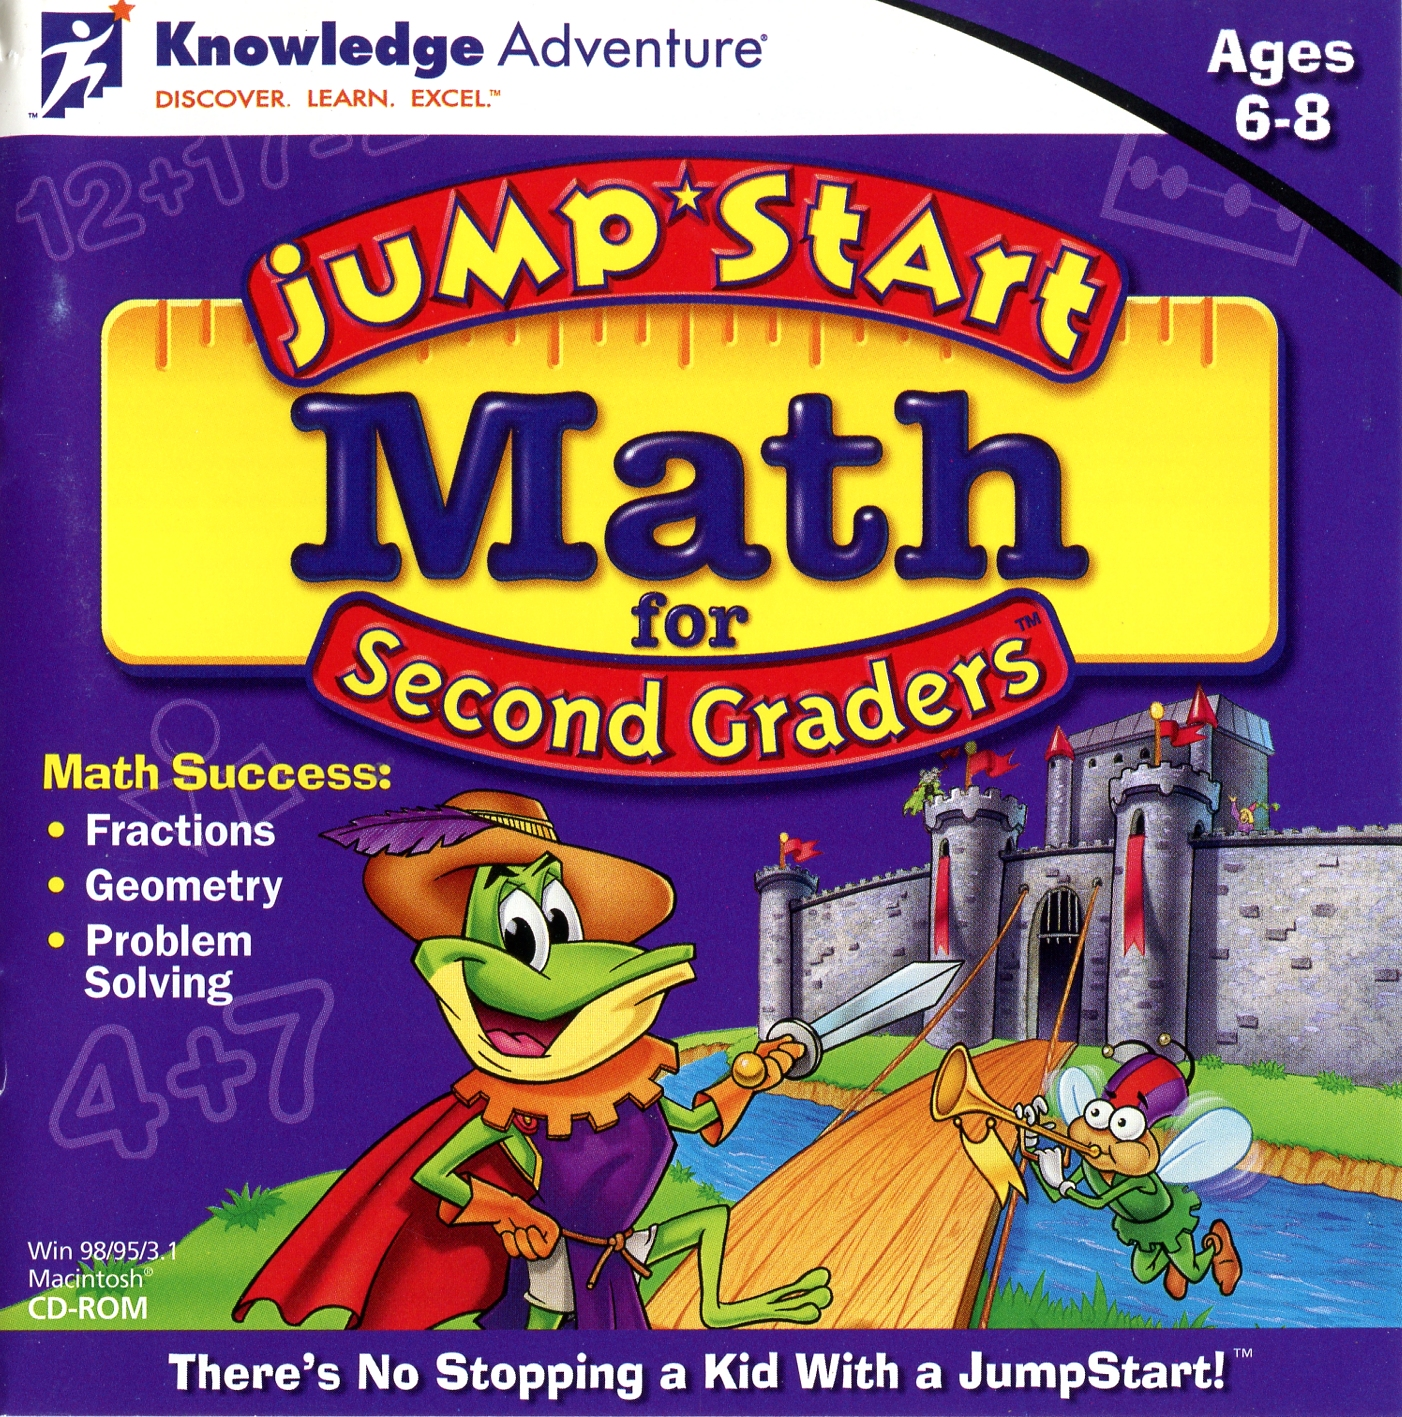 Jumpstart Math For Second Graders Jumpstart Wiki Fandom Powered